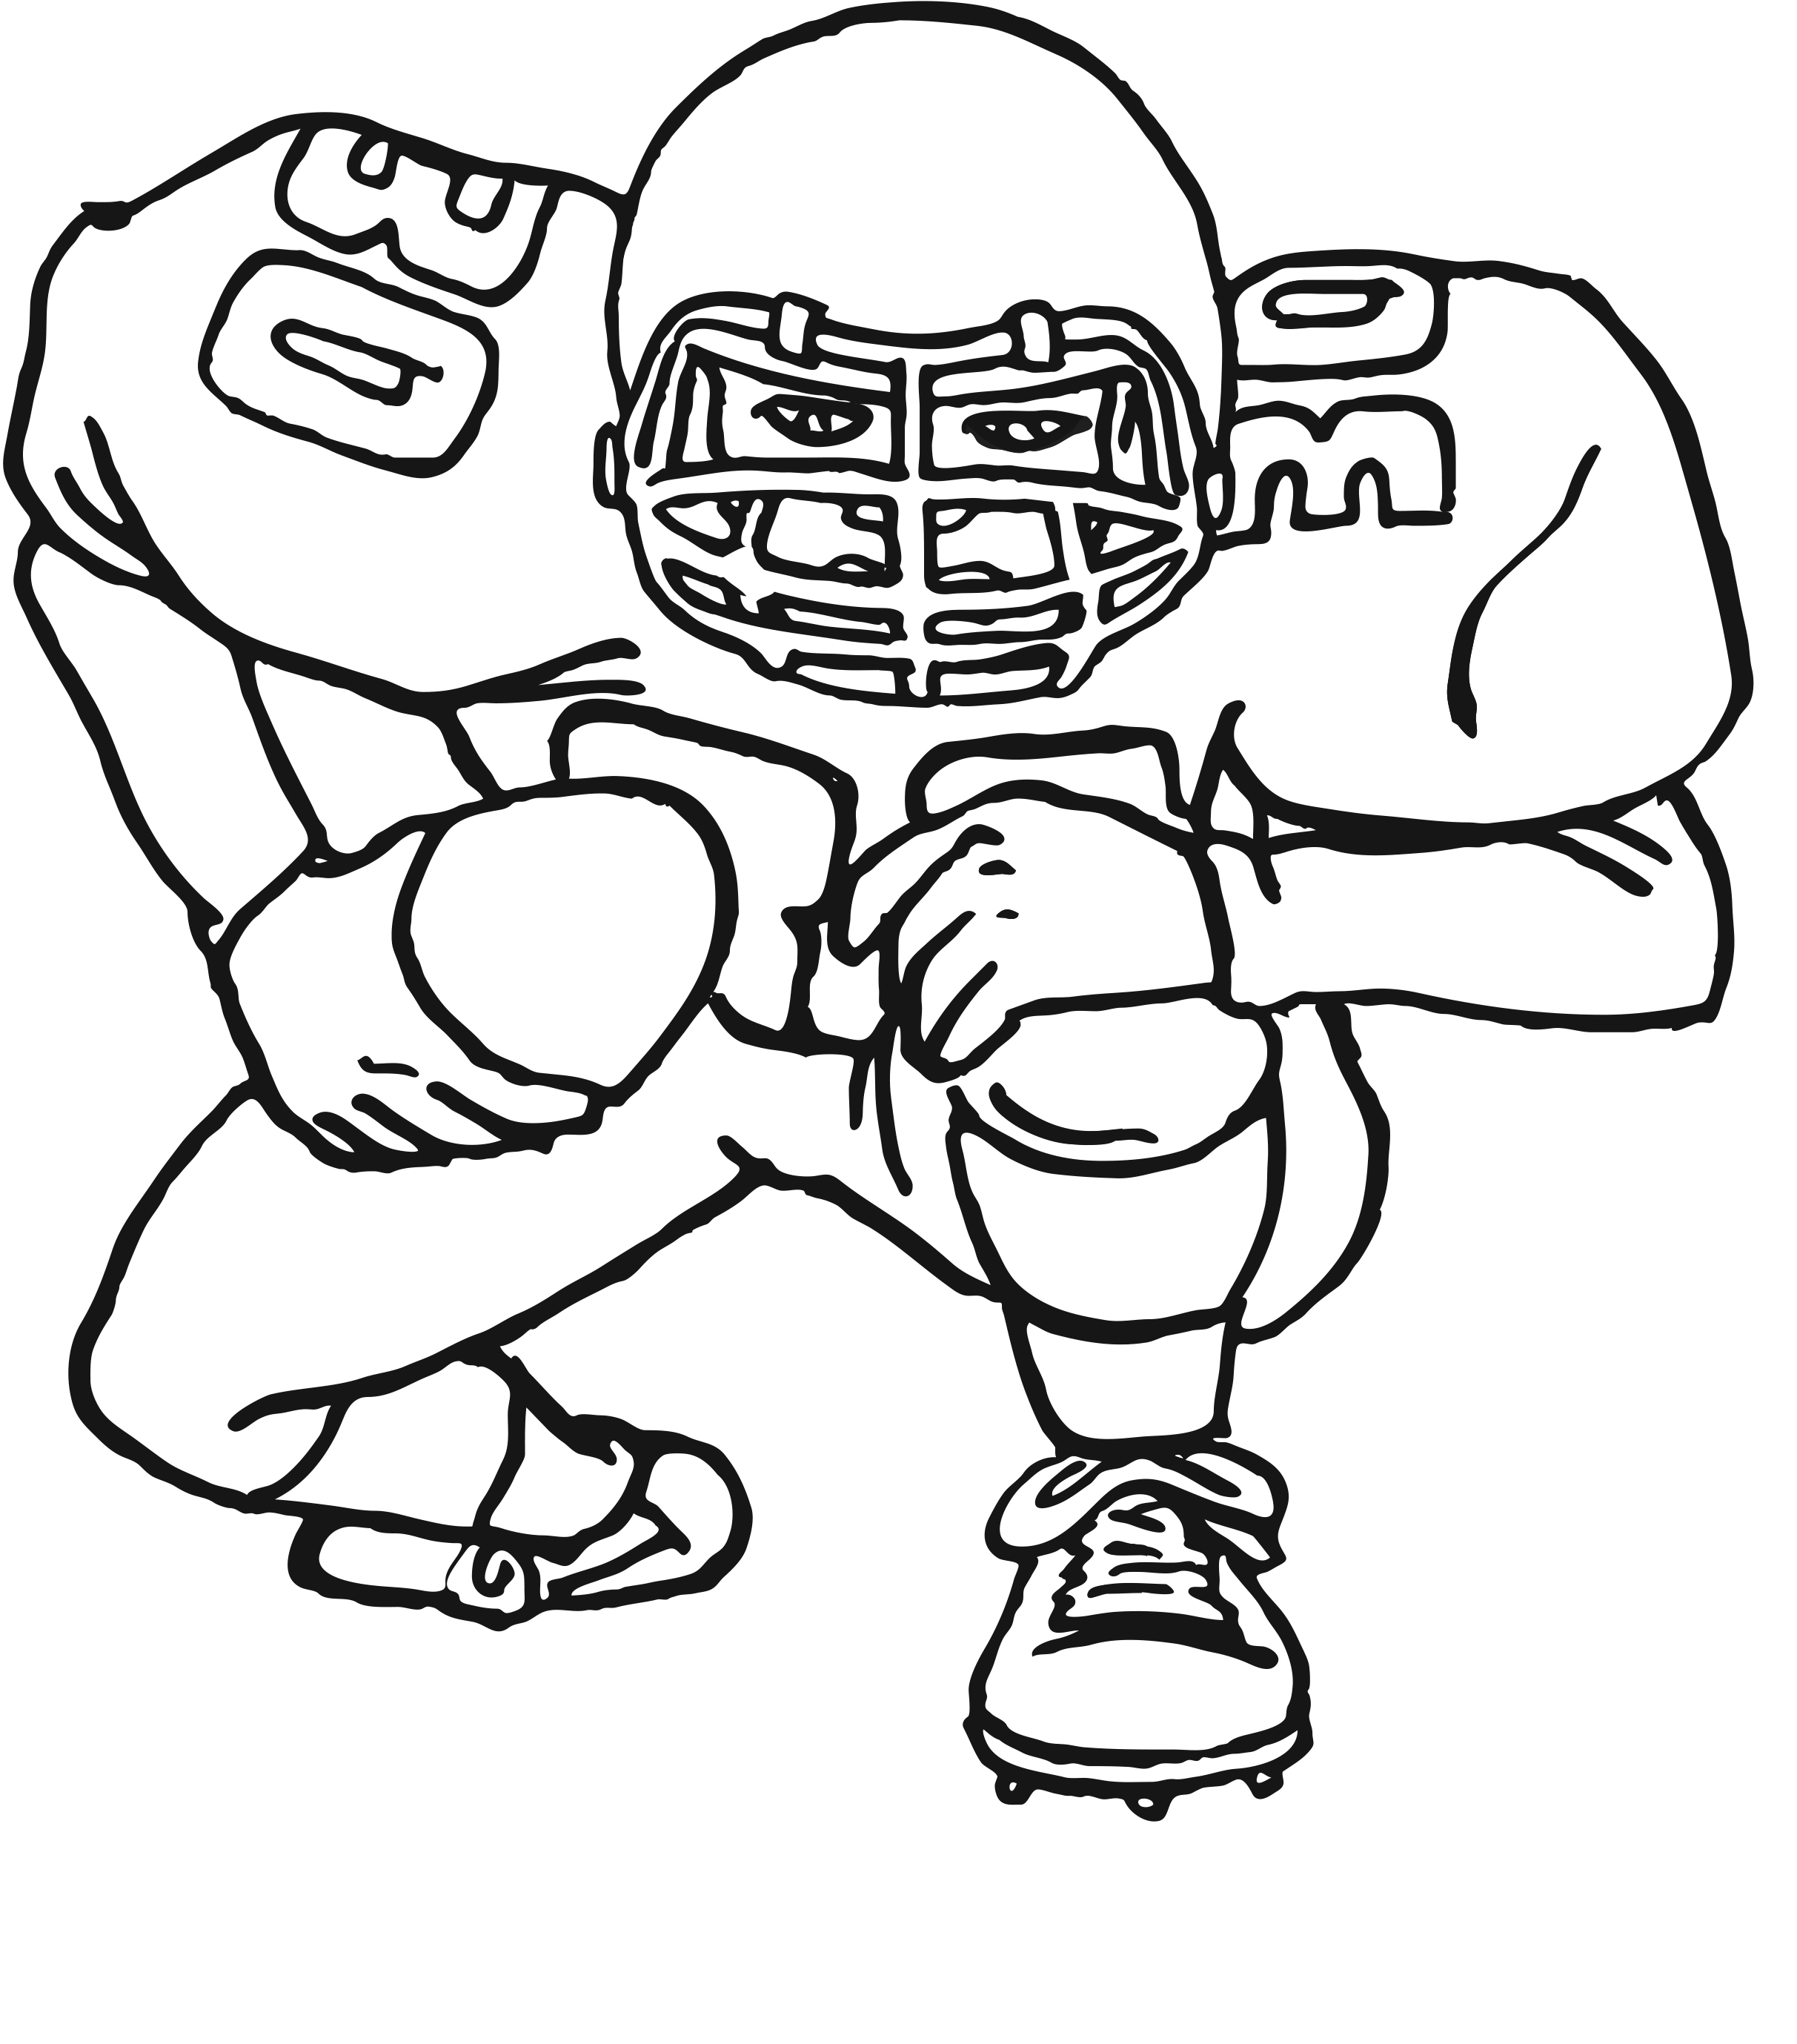 2425x2758 Football Coloring Pages For Kids Download